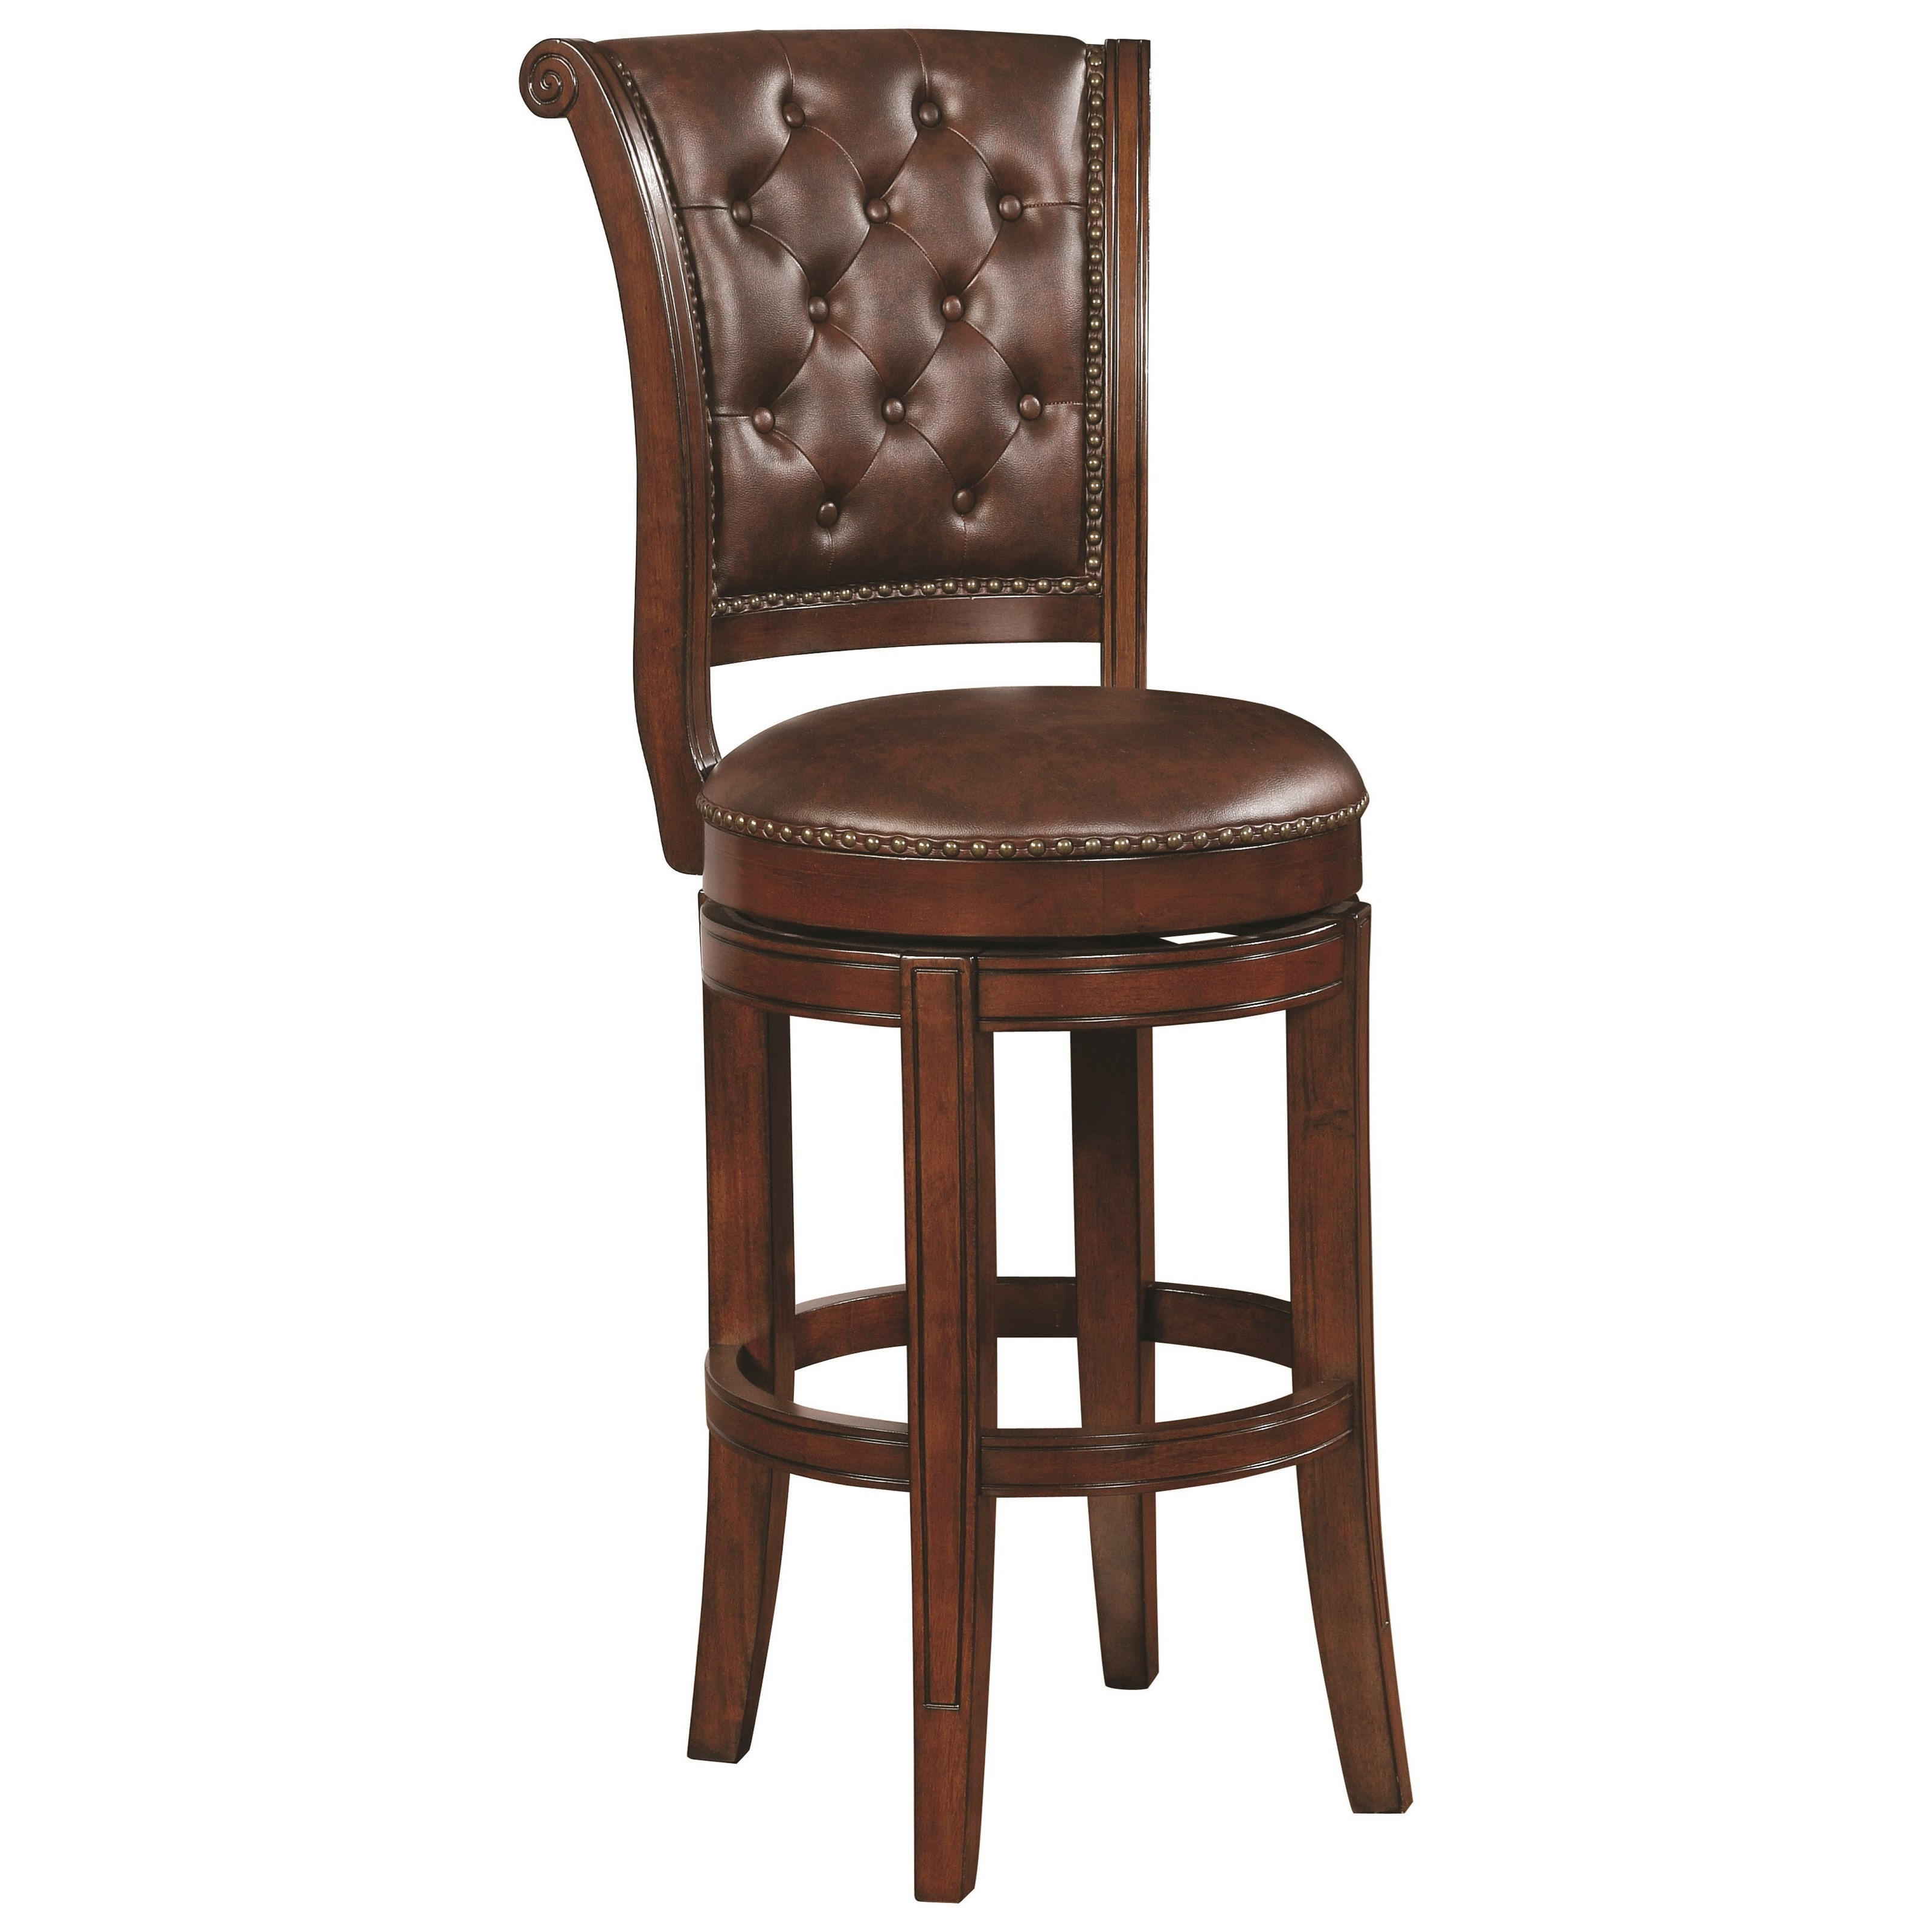 Coaster Dining Chairs And Bar Stools Traditional Bar Stool With Button  Tufting   Coaster Fine Furniture